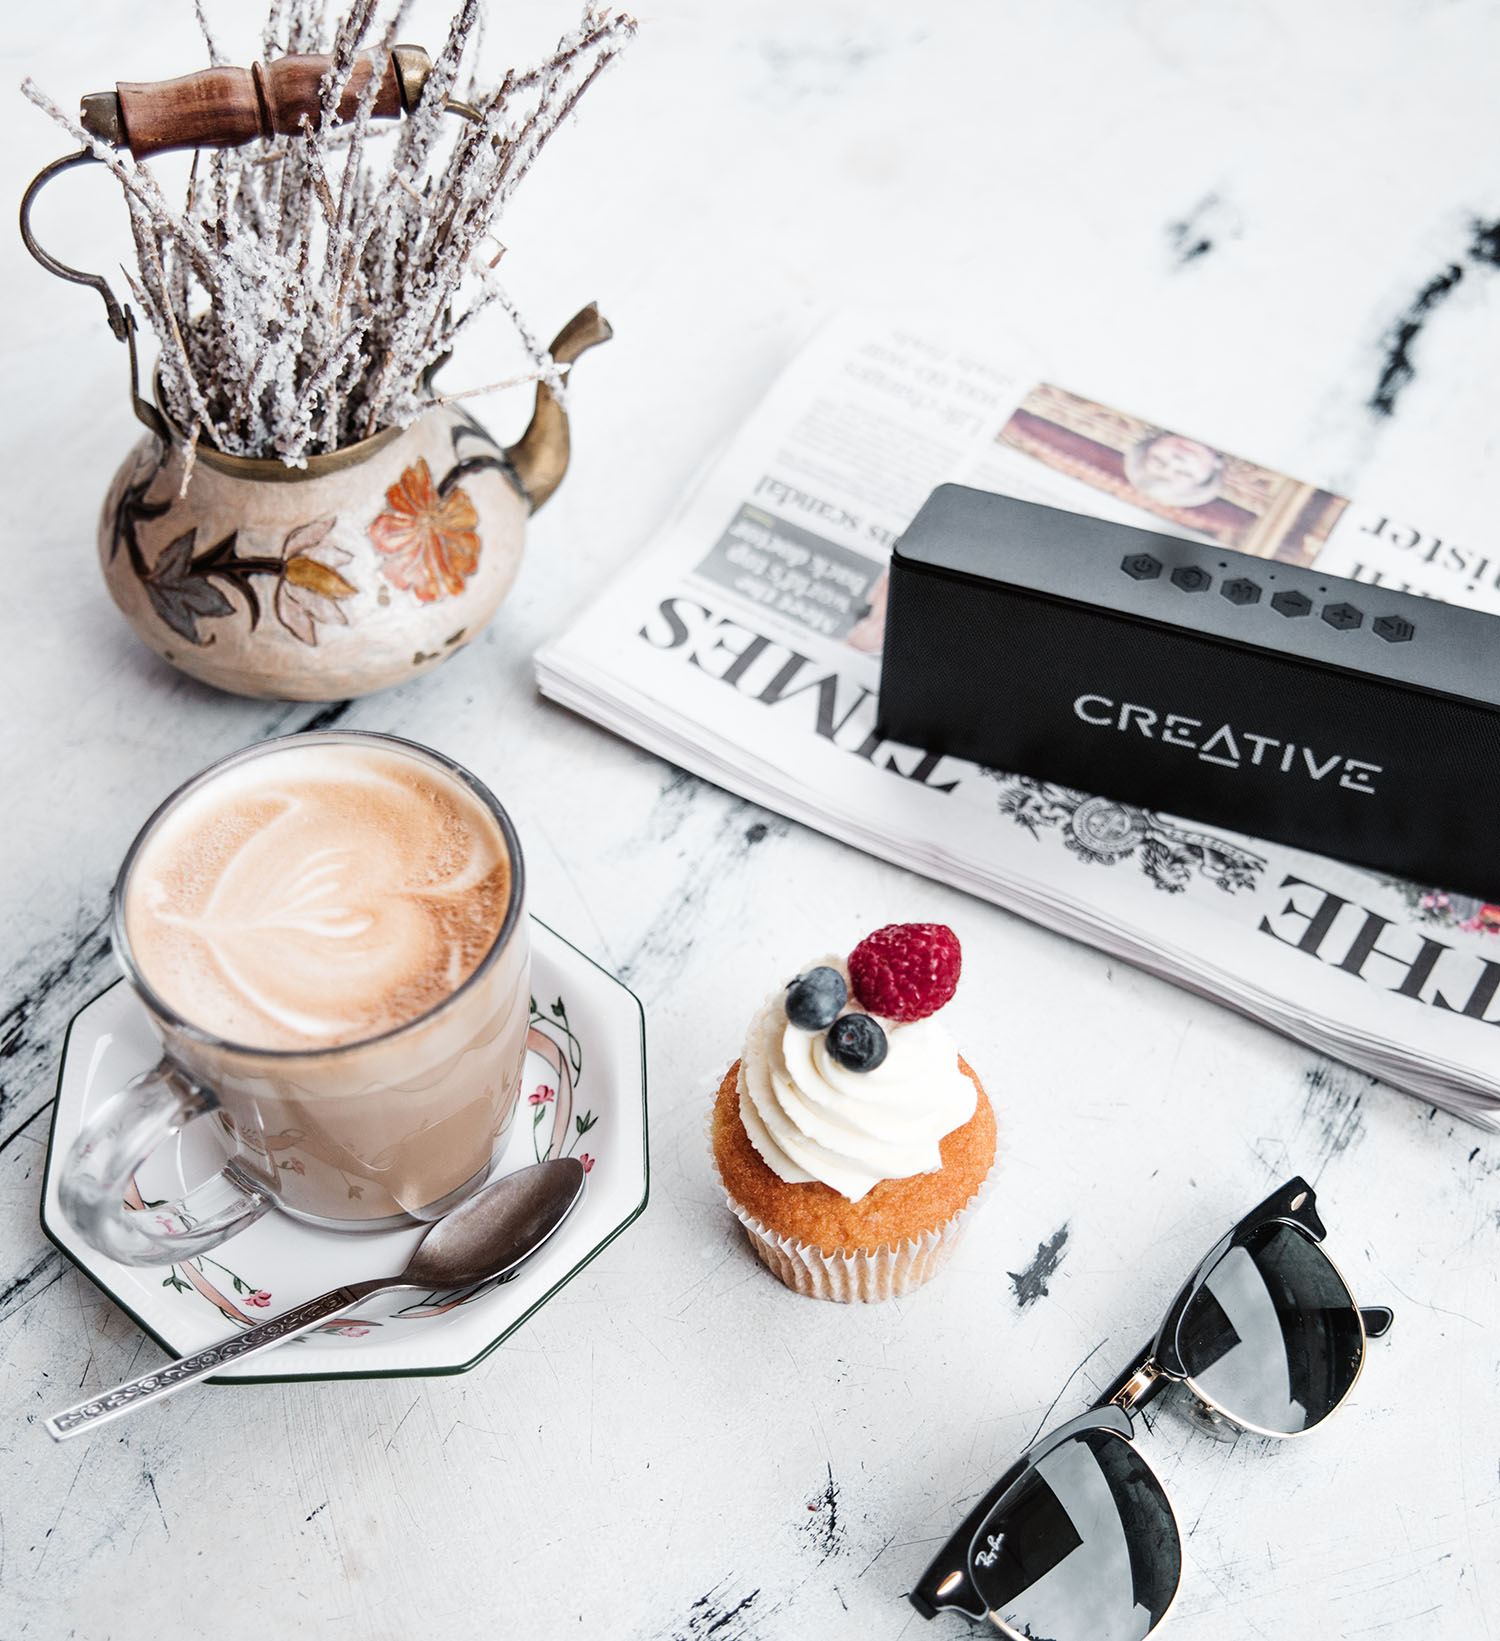 Flatlay with Creative MUVO 2 Bluetooth Speaker, Latte, Ray-Ban & Cupcake